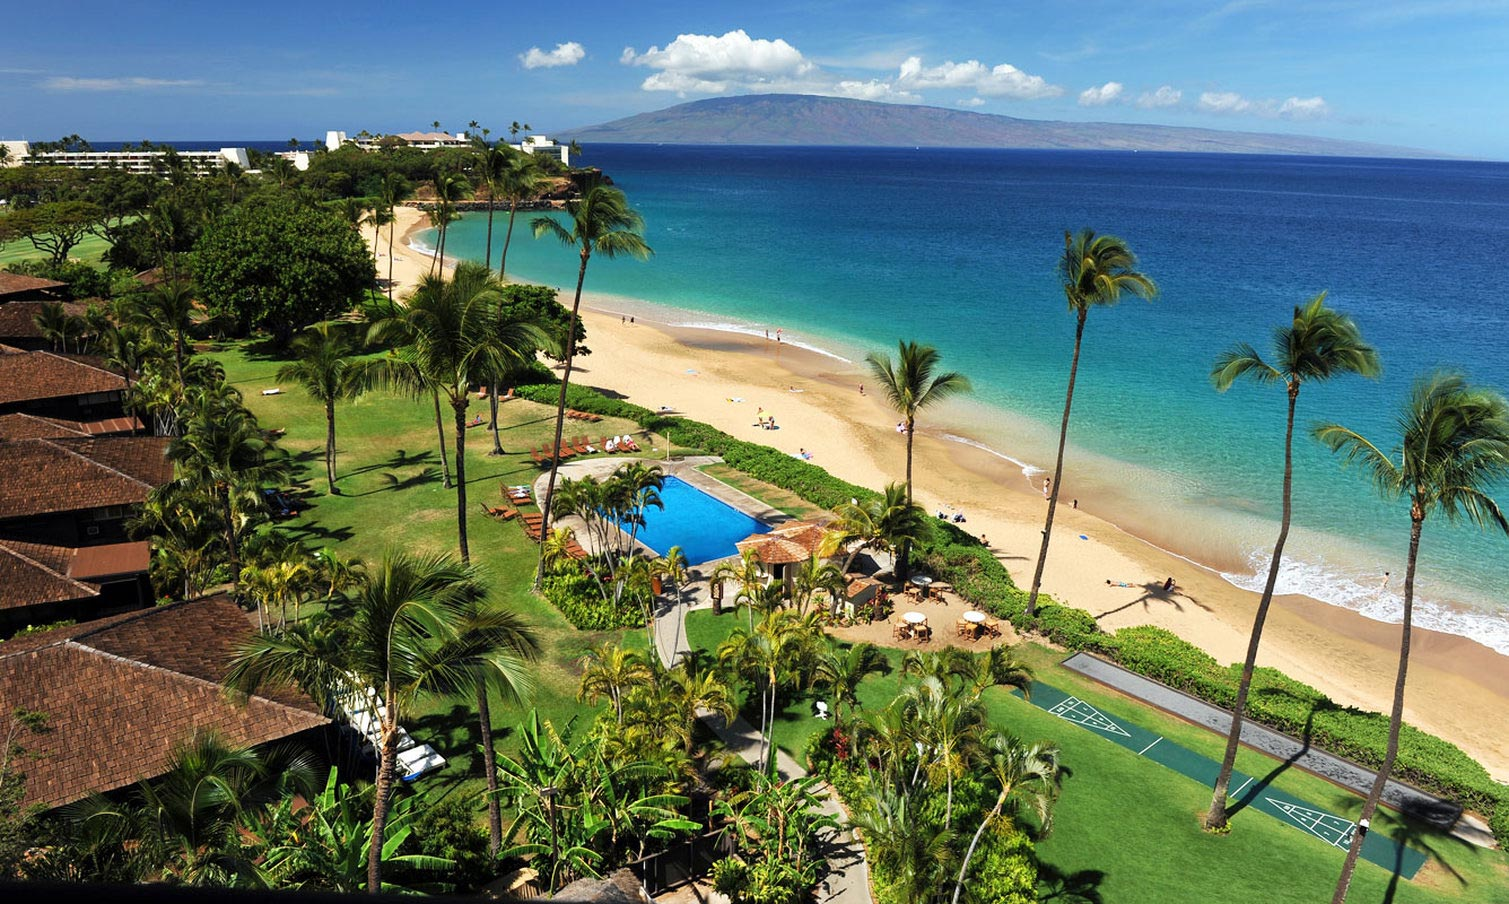 Royal Lahaina Resort Maui